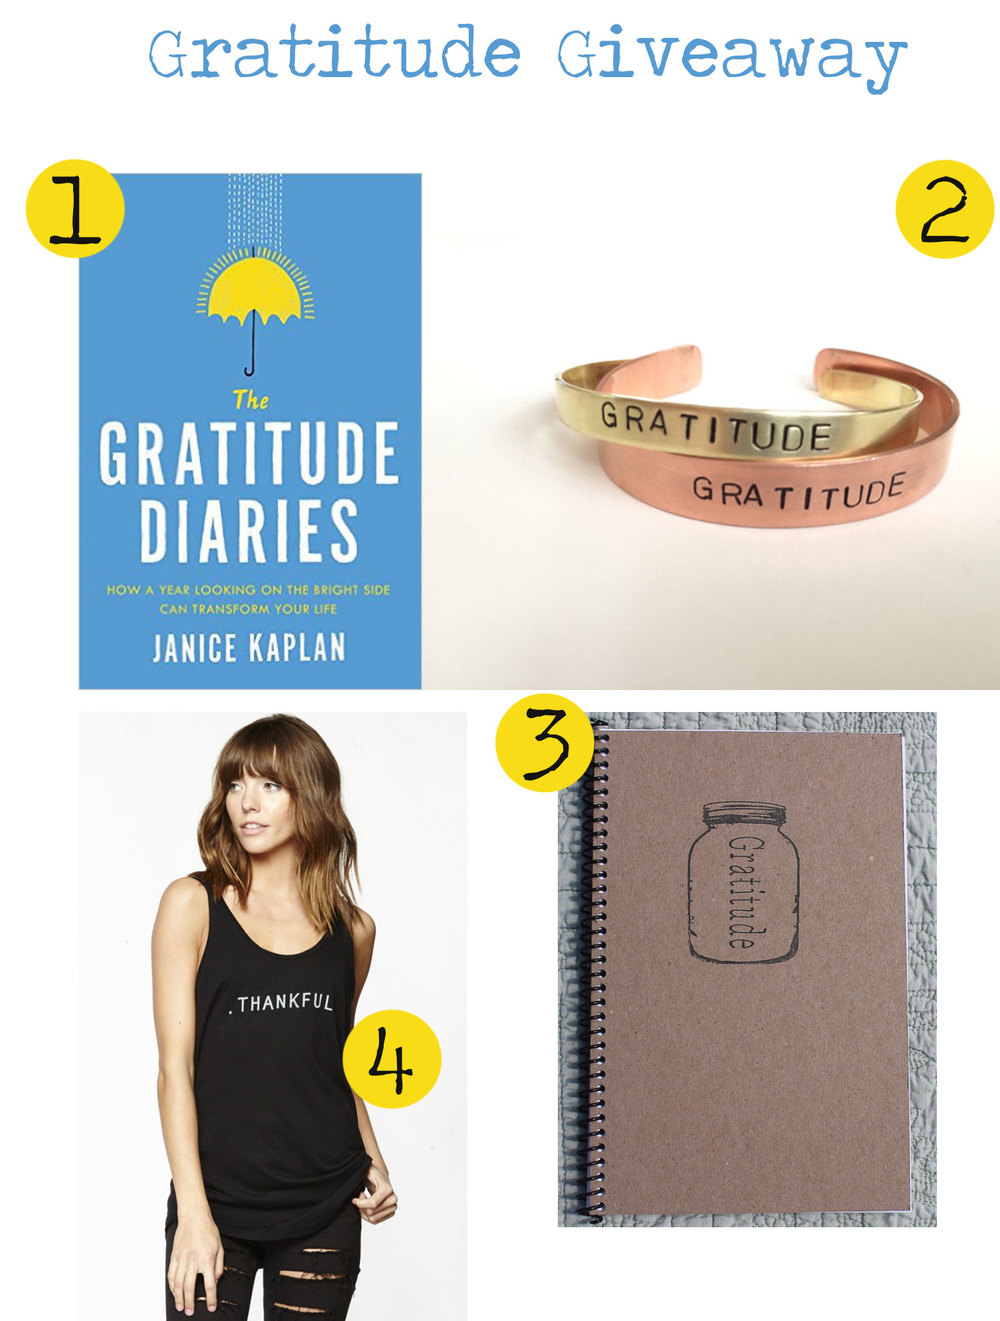 Pin now and enter to win this gratitude giveaway